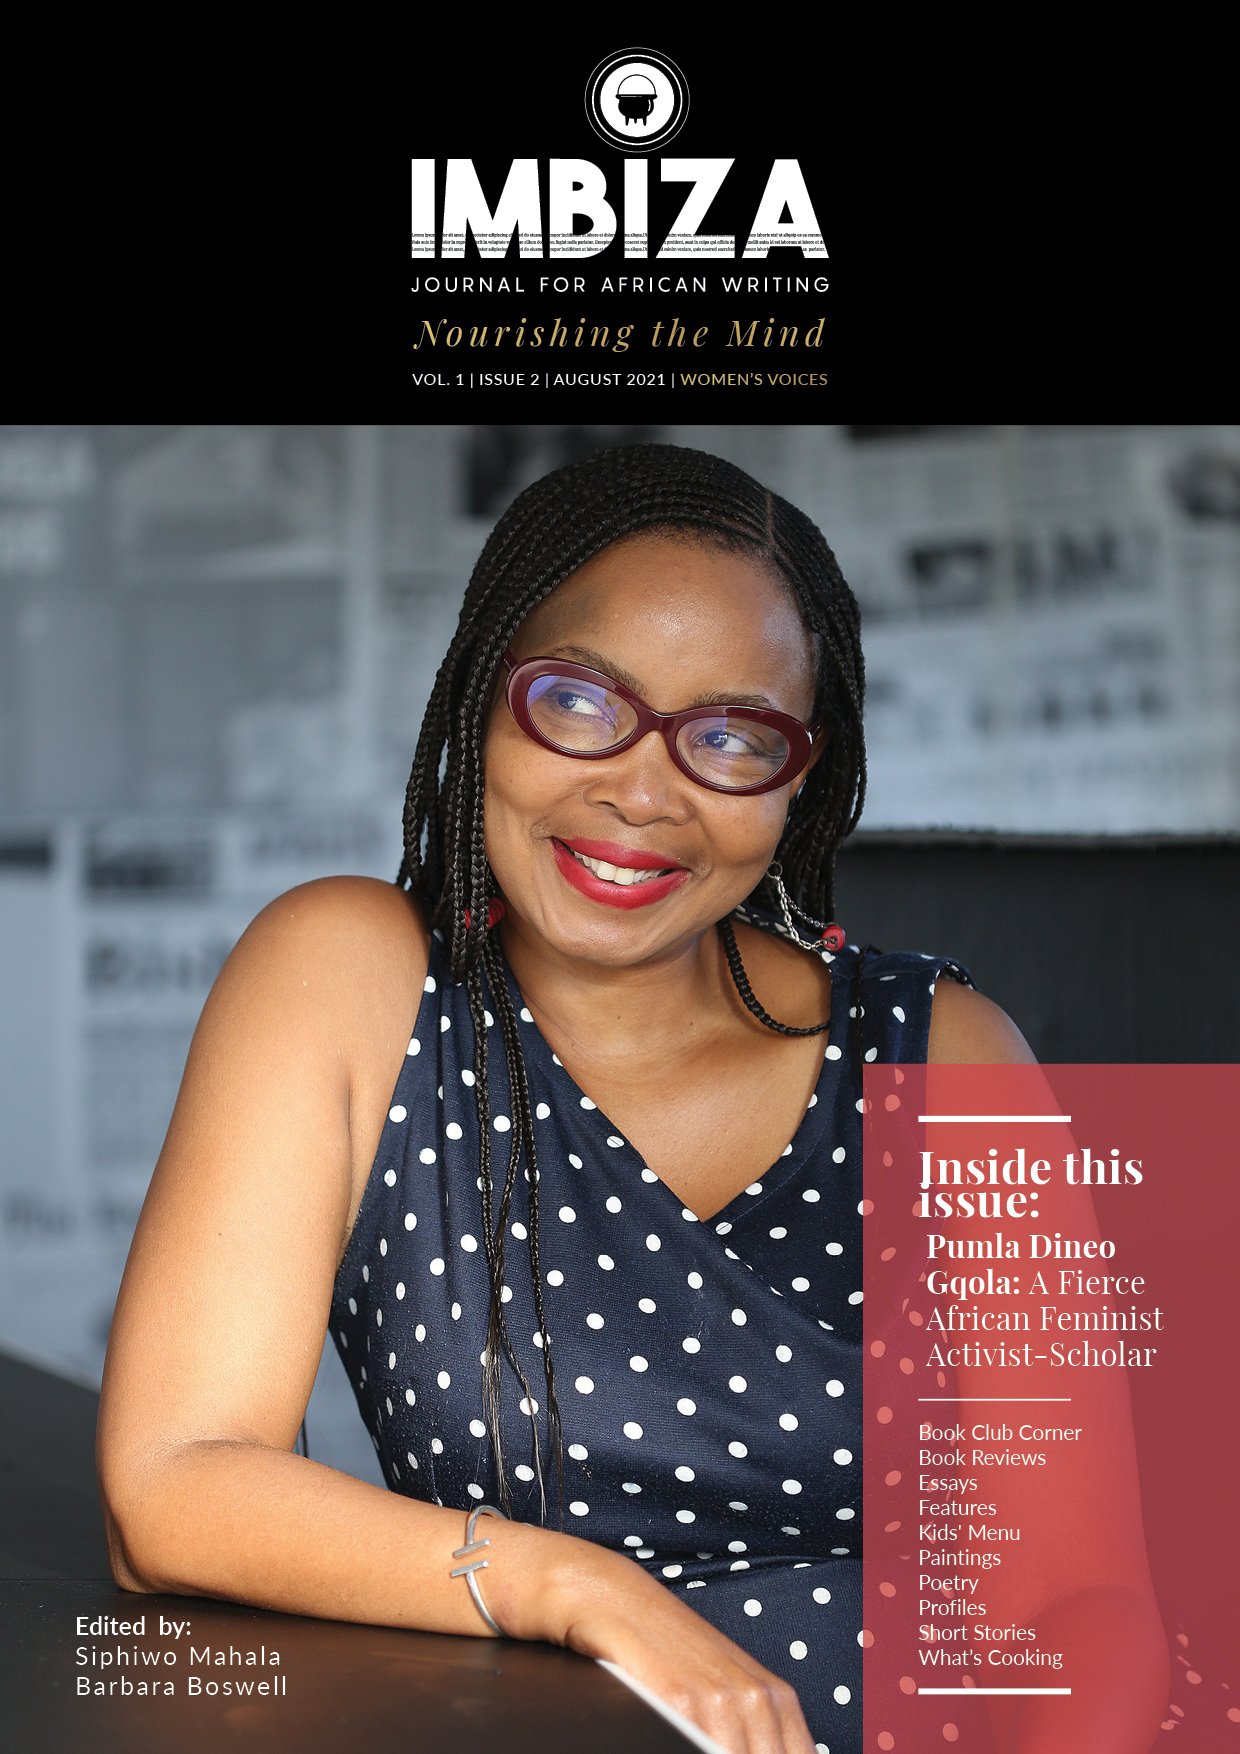 Imbiza - Journal for African Writing